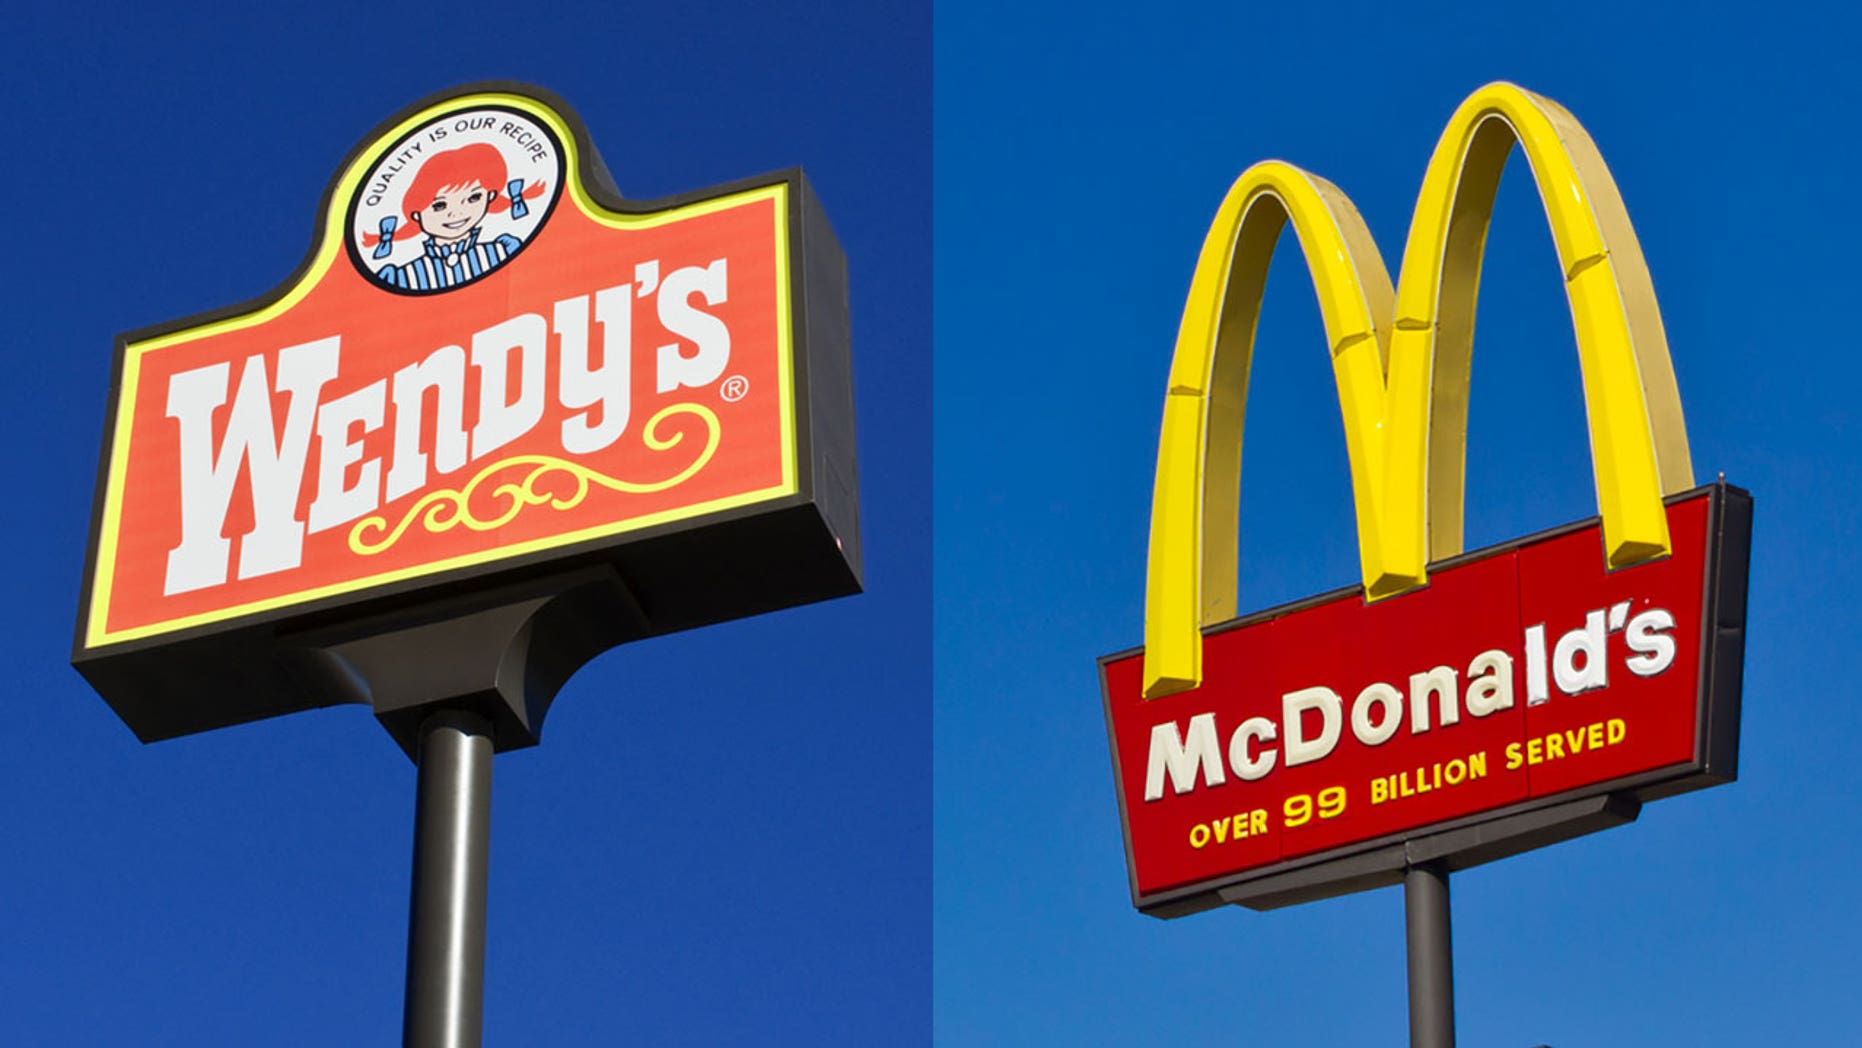 The battle between Wendy's and McDonald's is not new, as they are known to take jabs at each other both on social media and in ads.